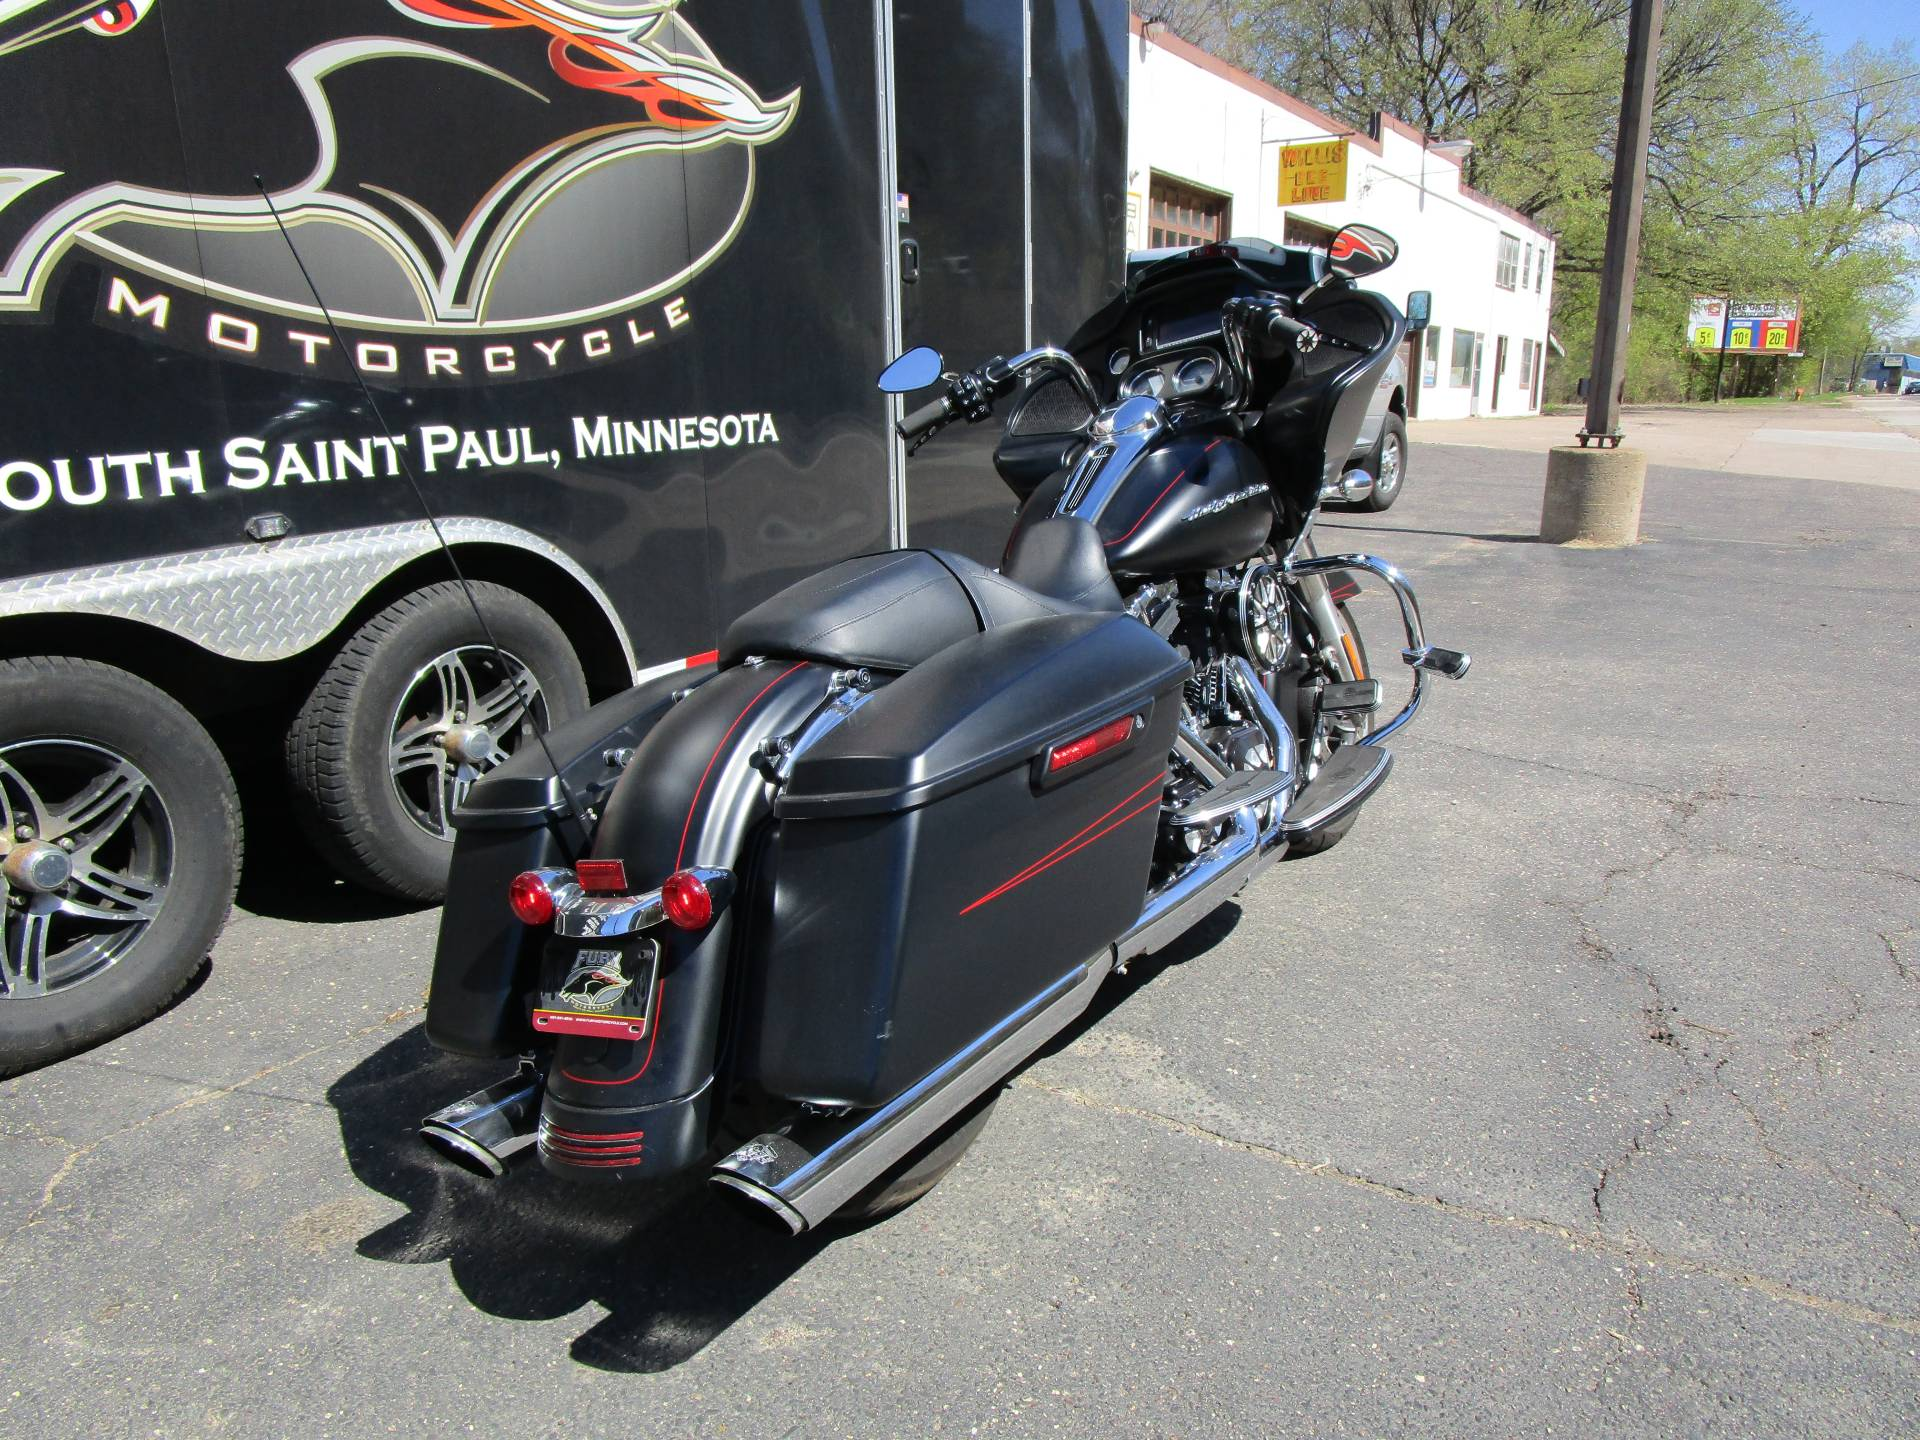 2015 Harley-Davidson FLTRXS ROAD GLIDE SPECIAL in South Saint Paul, Minnesota - Photo 6